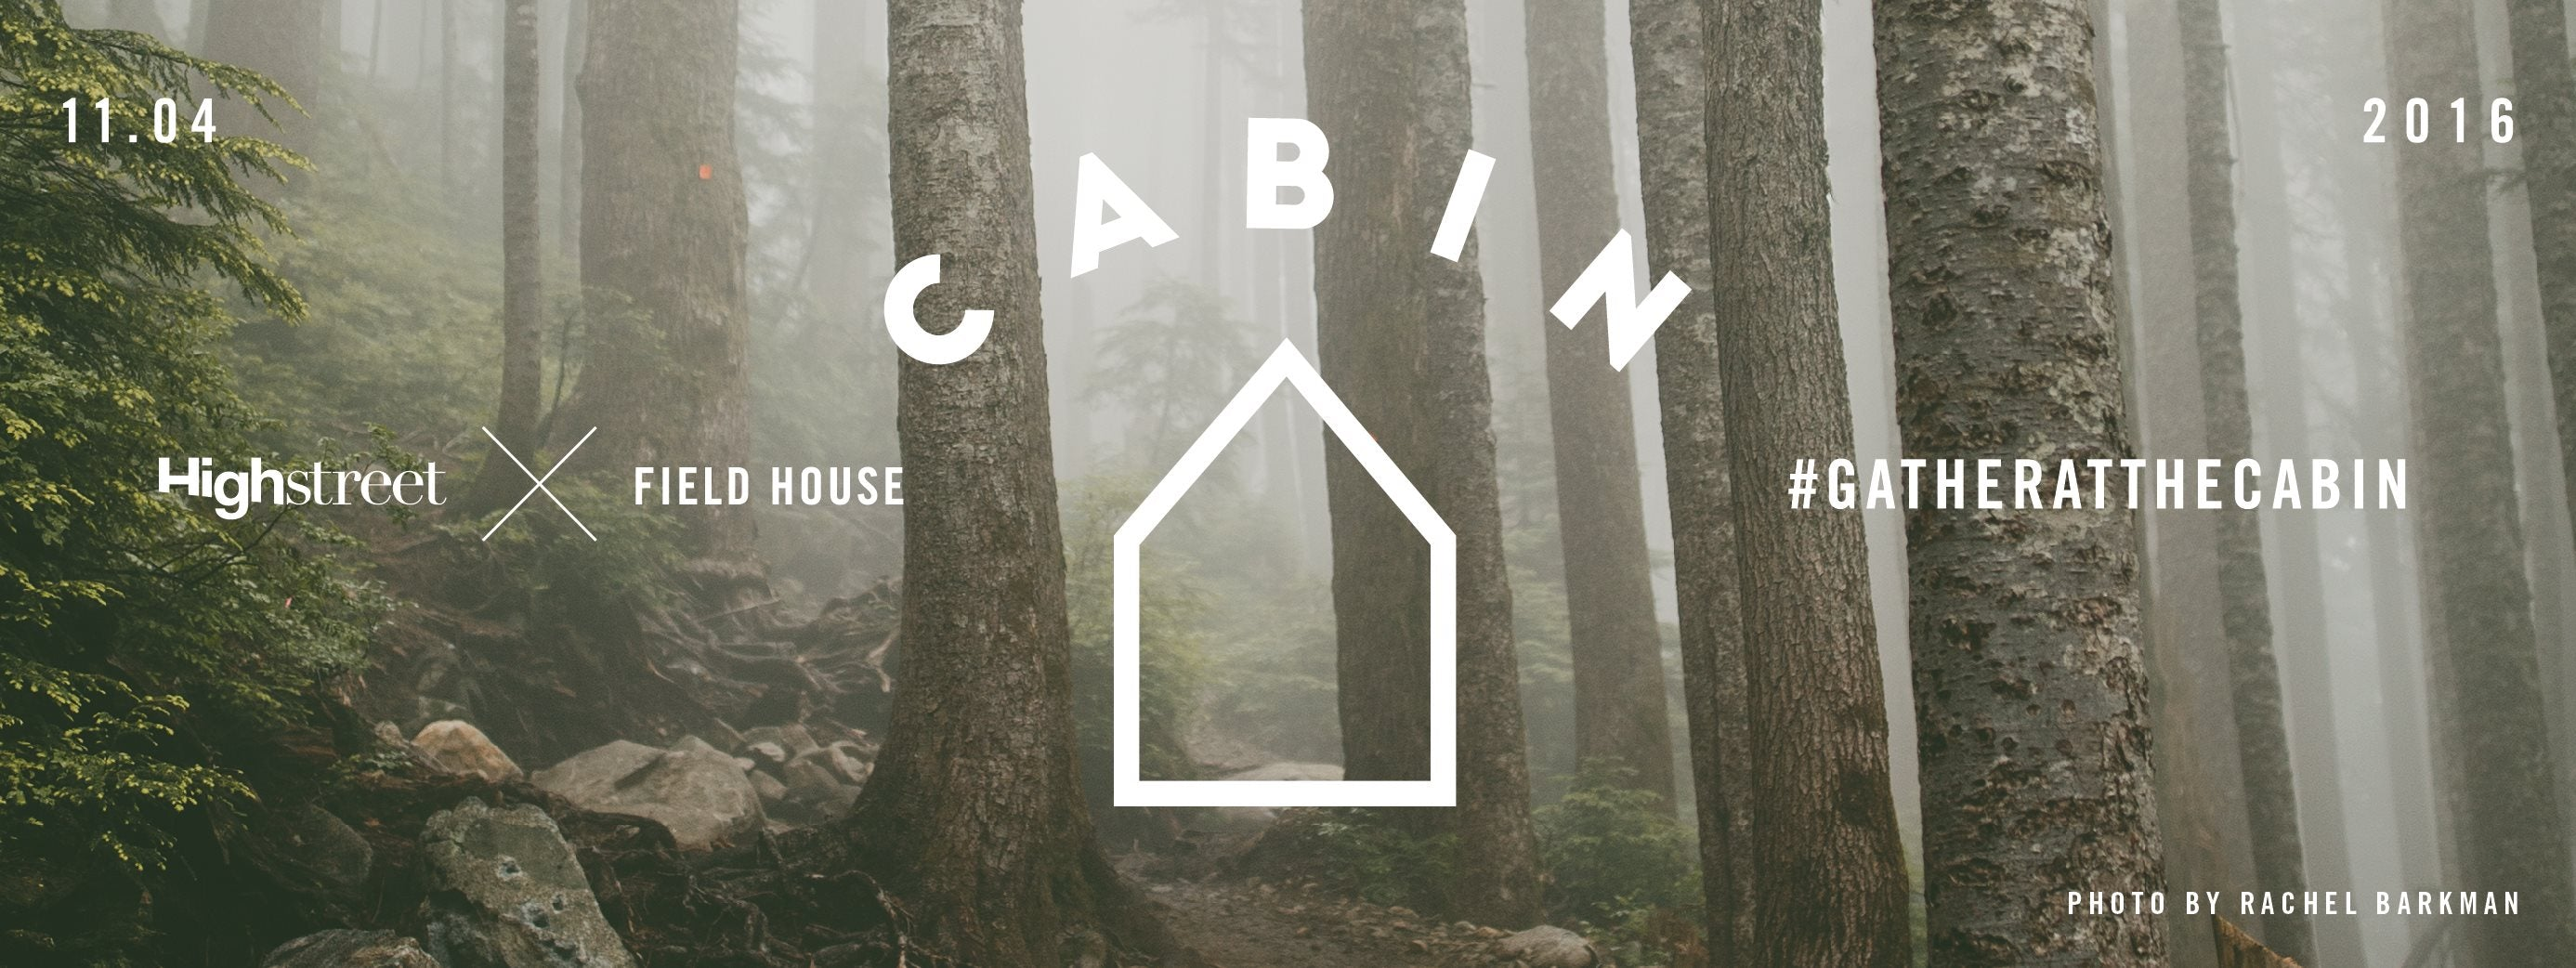 CABIN - A SOCIAL GATHERING / NOV 4 EVENT